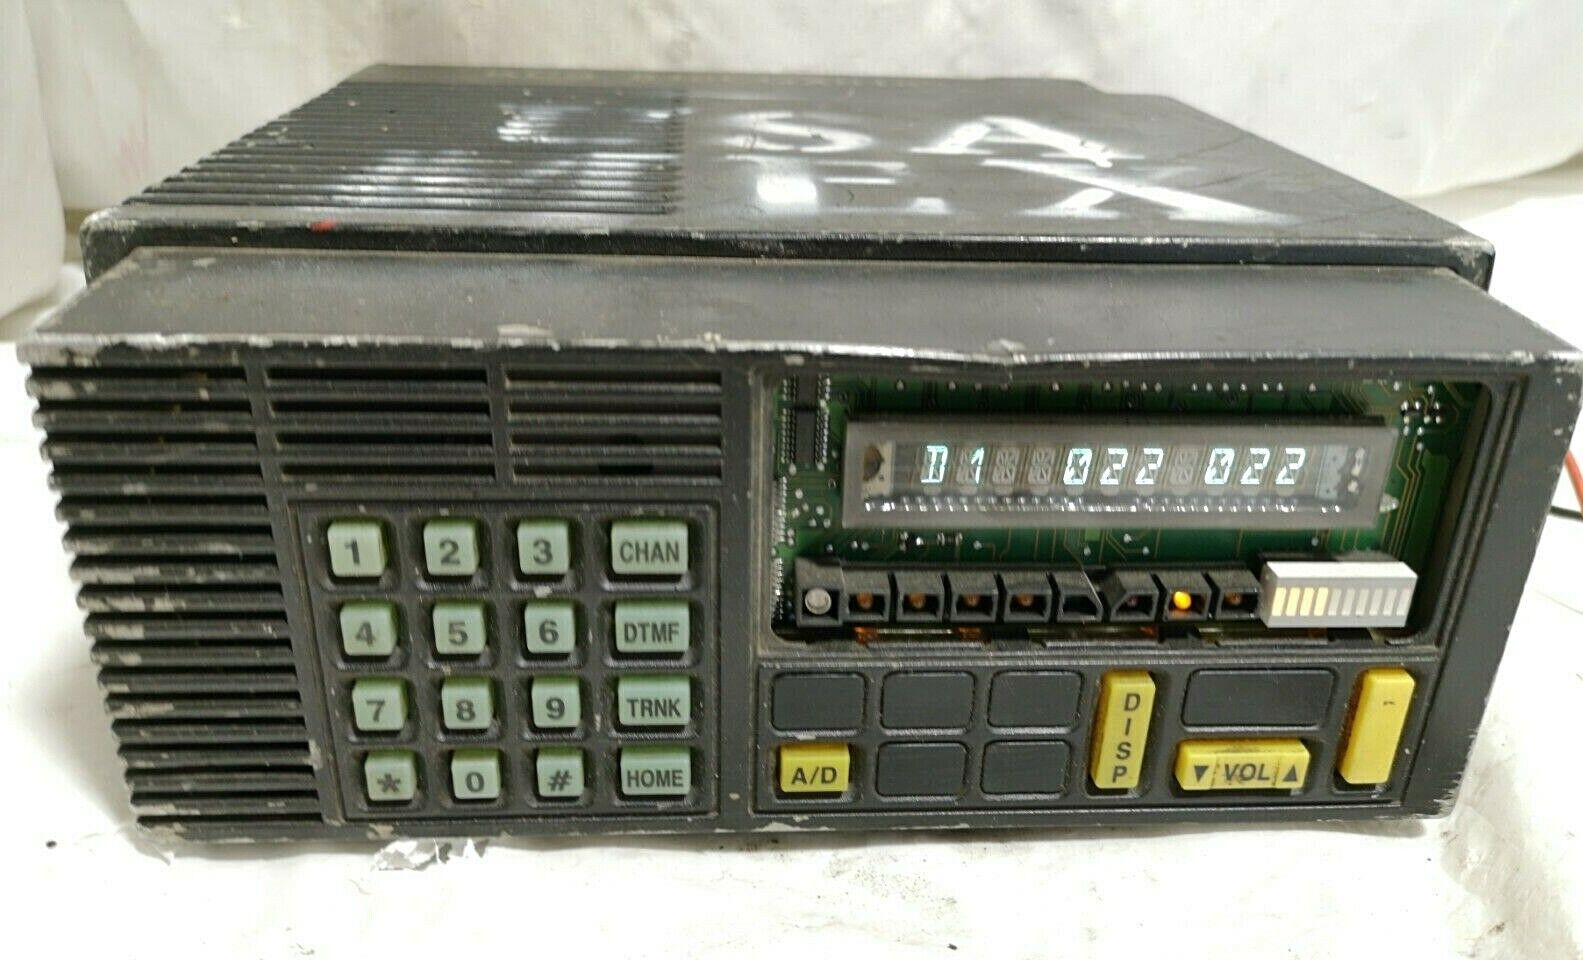 MOTOROLA RADIO RAILROAD HEAVY DUTY R04KKH9PW9AN Or MBR43KME1170AD MISSING COVER - $224.99